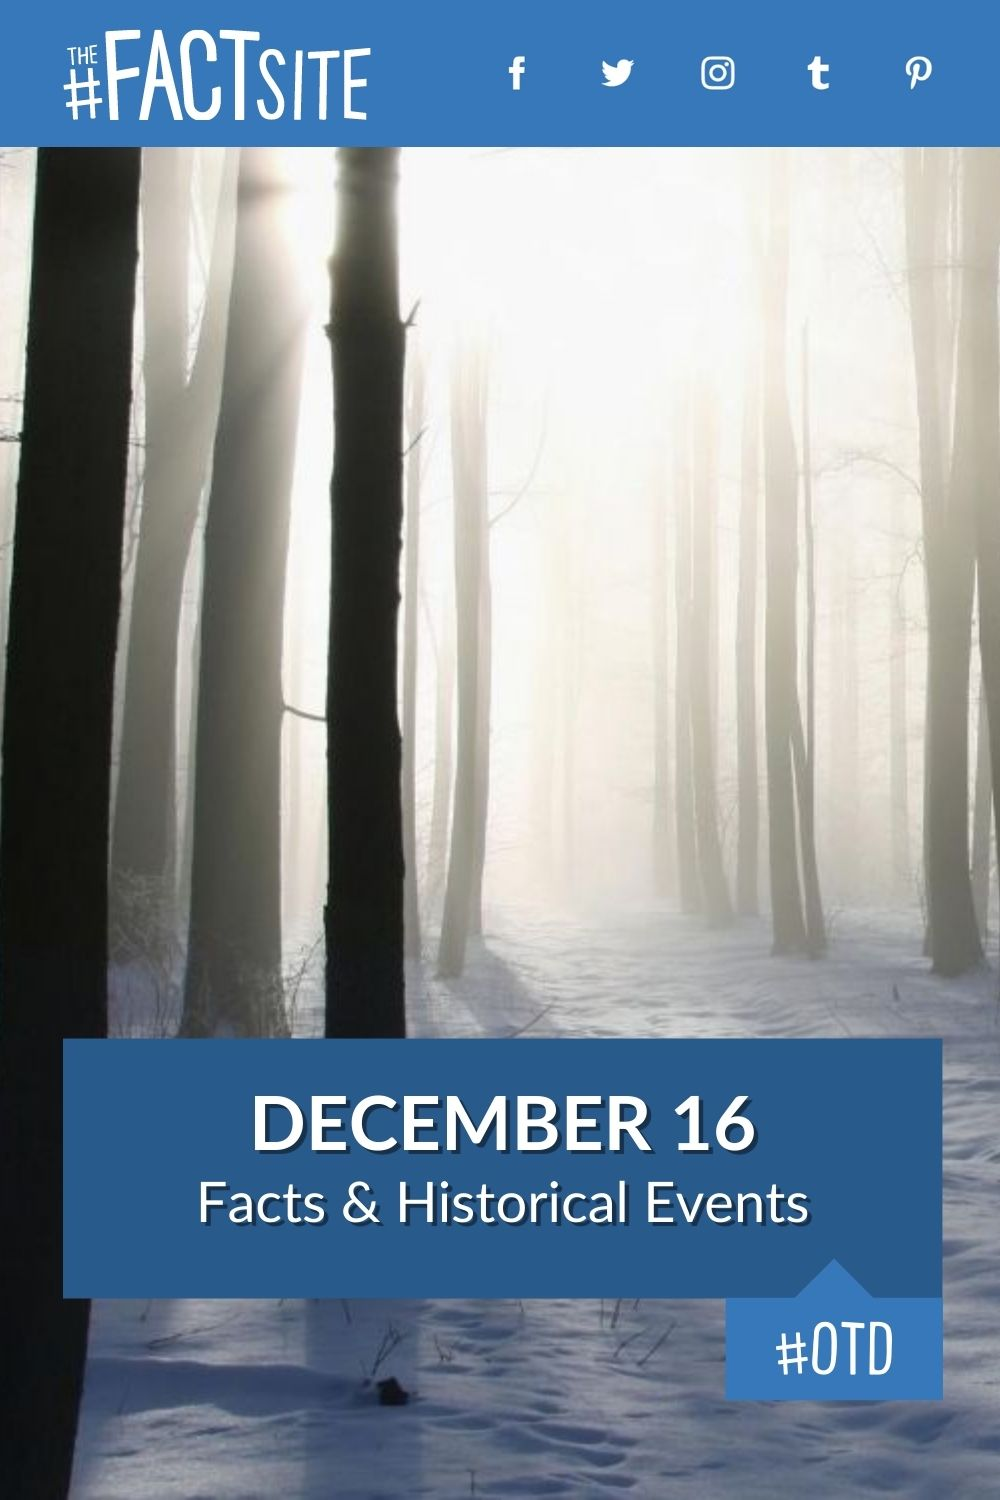 Facts & Historic Events That Happened on December 16